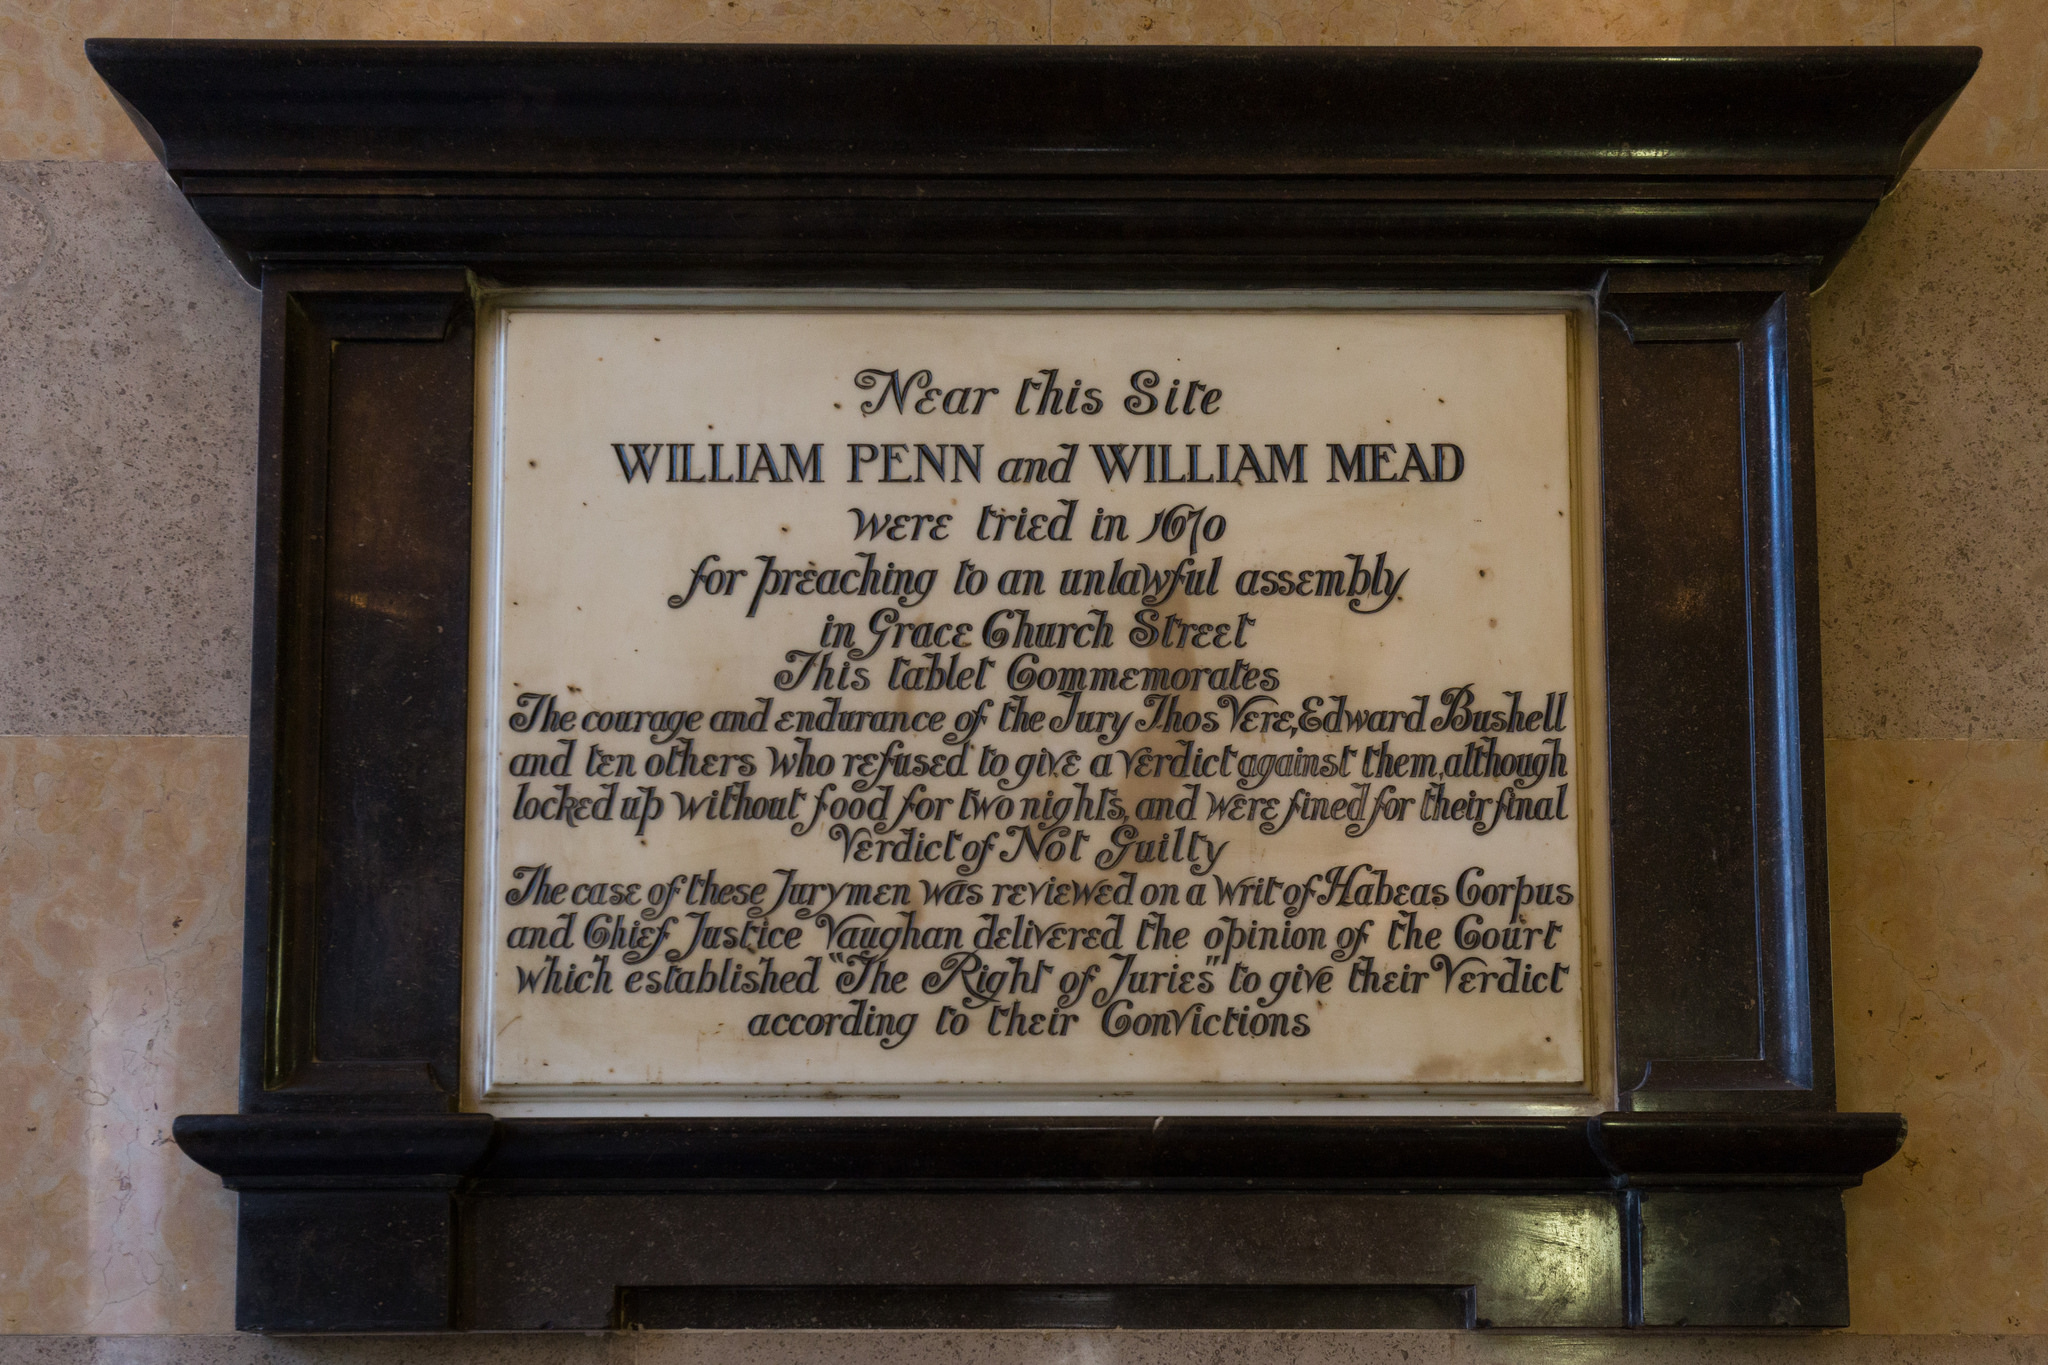 William Penn & William Mead Plaque (Flickr: Paul Clarke)